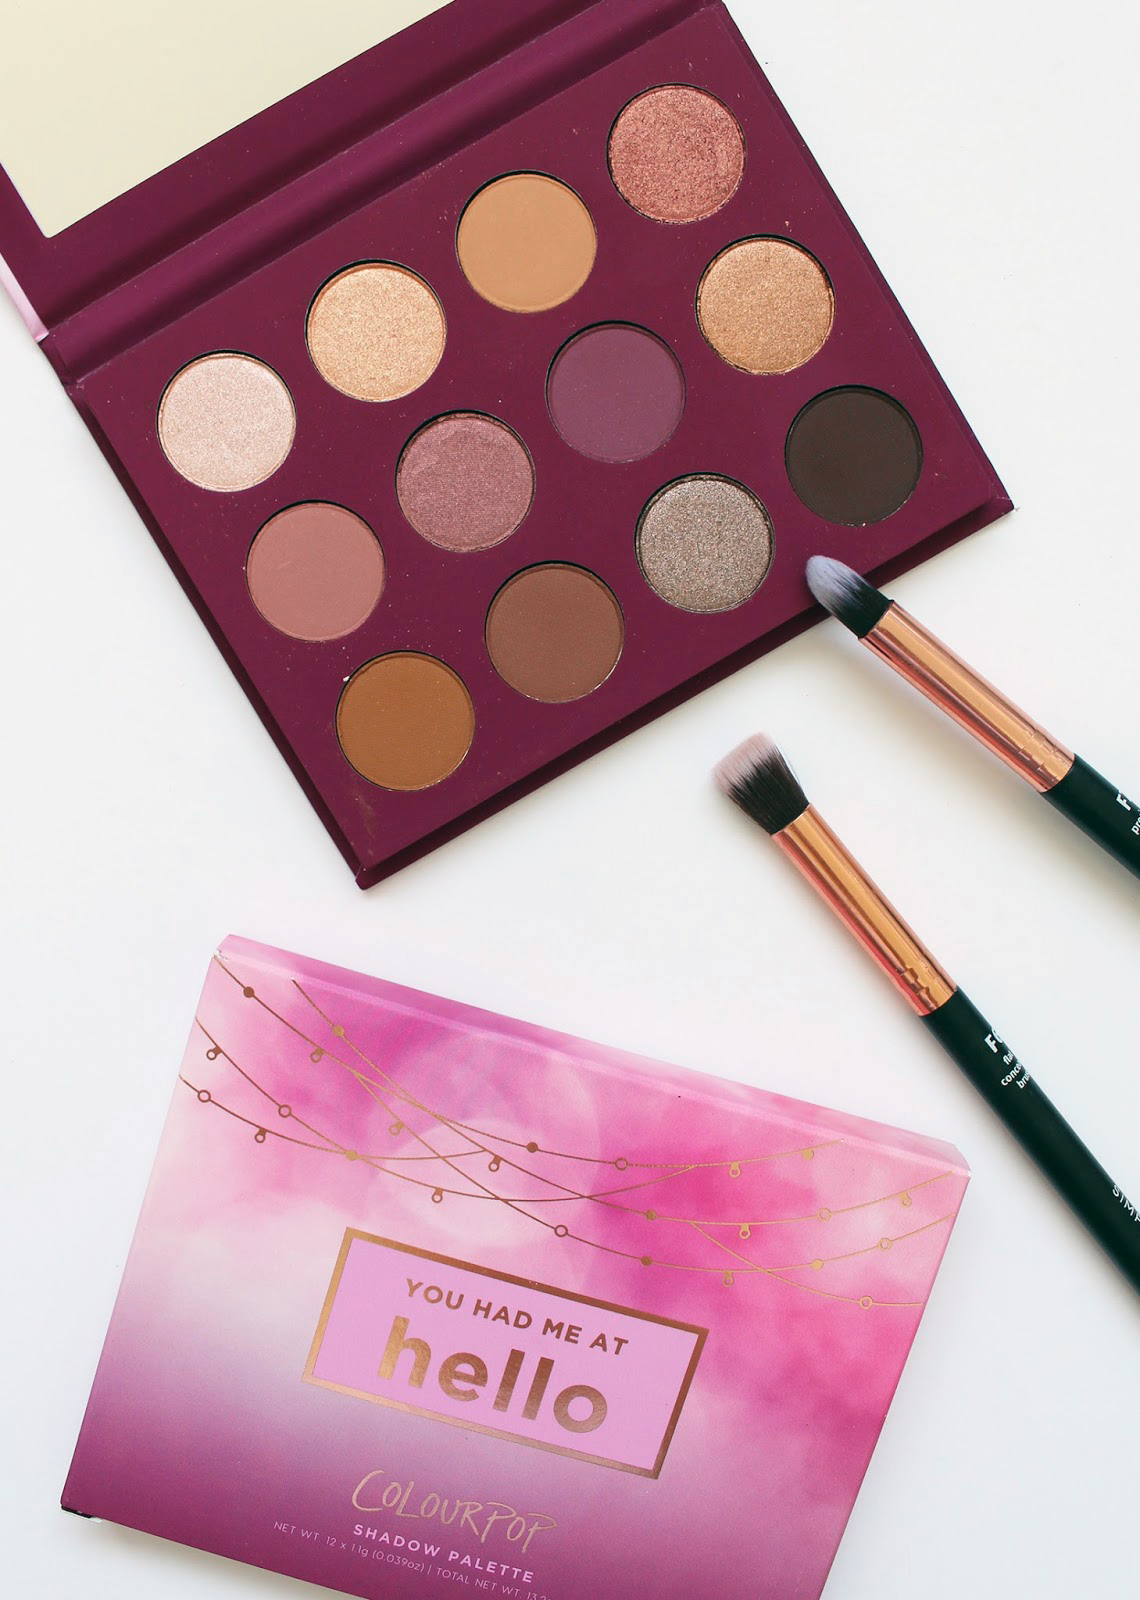 COLOURPOP   You Had Me At Hello Pressed Shadow Palette - Review + Swatches - CassandraMyee